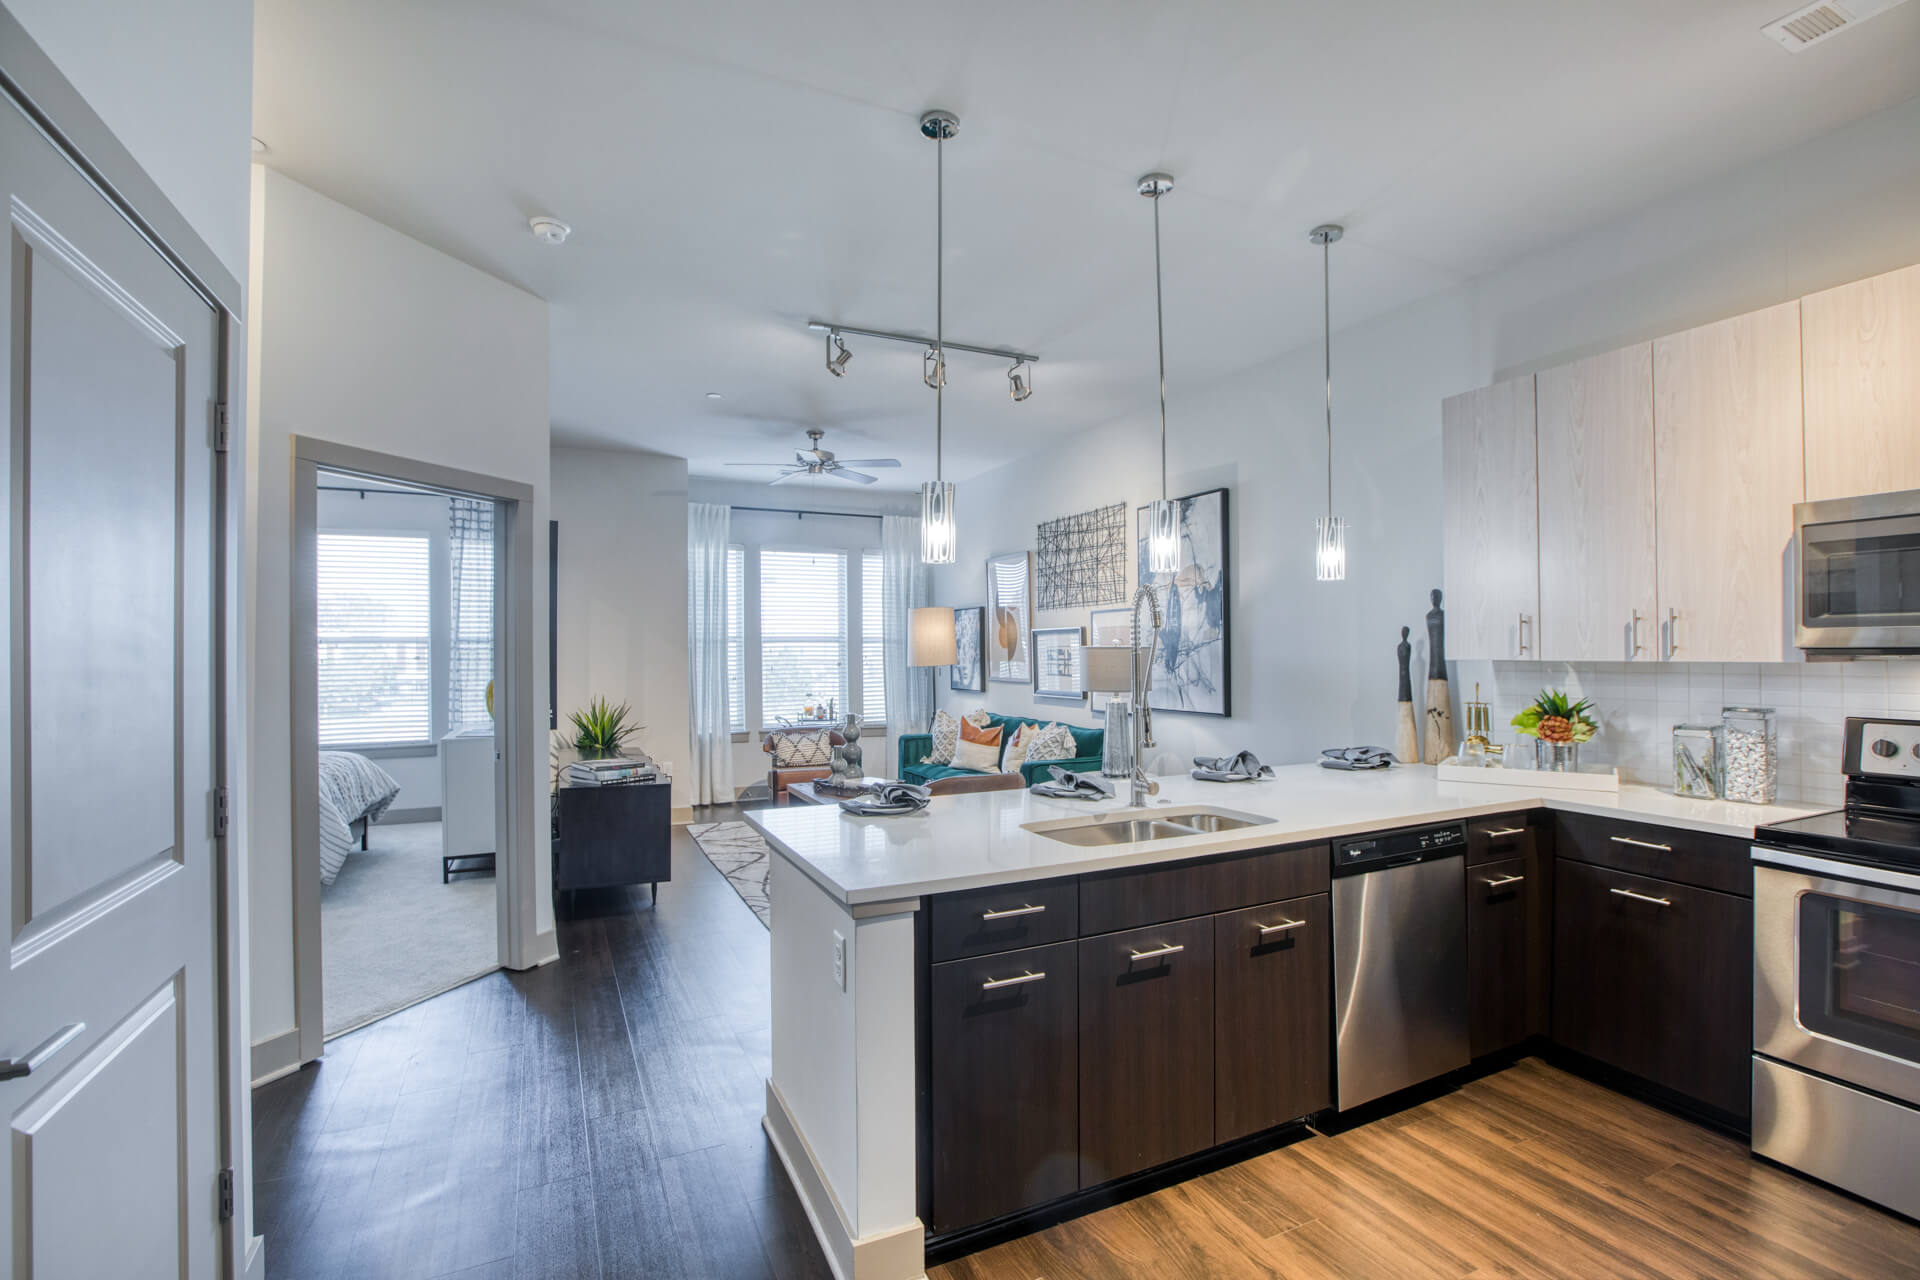 Energy Efficient Appliances In Kitchen at Centric LoHi by Windsor, Denver, Colorado